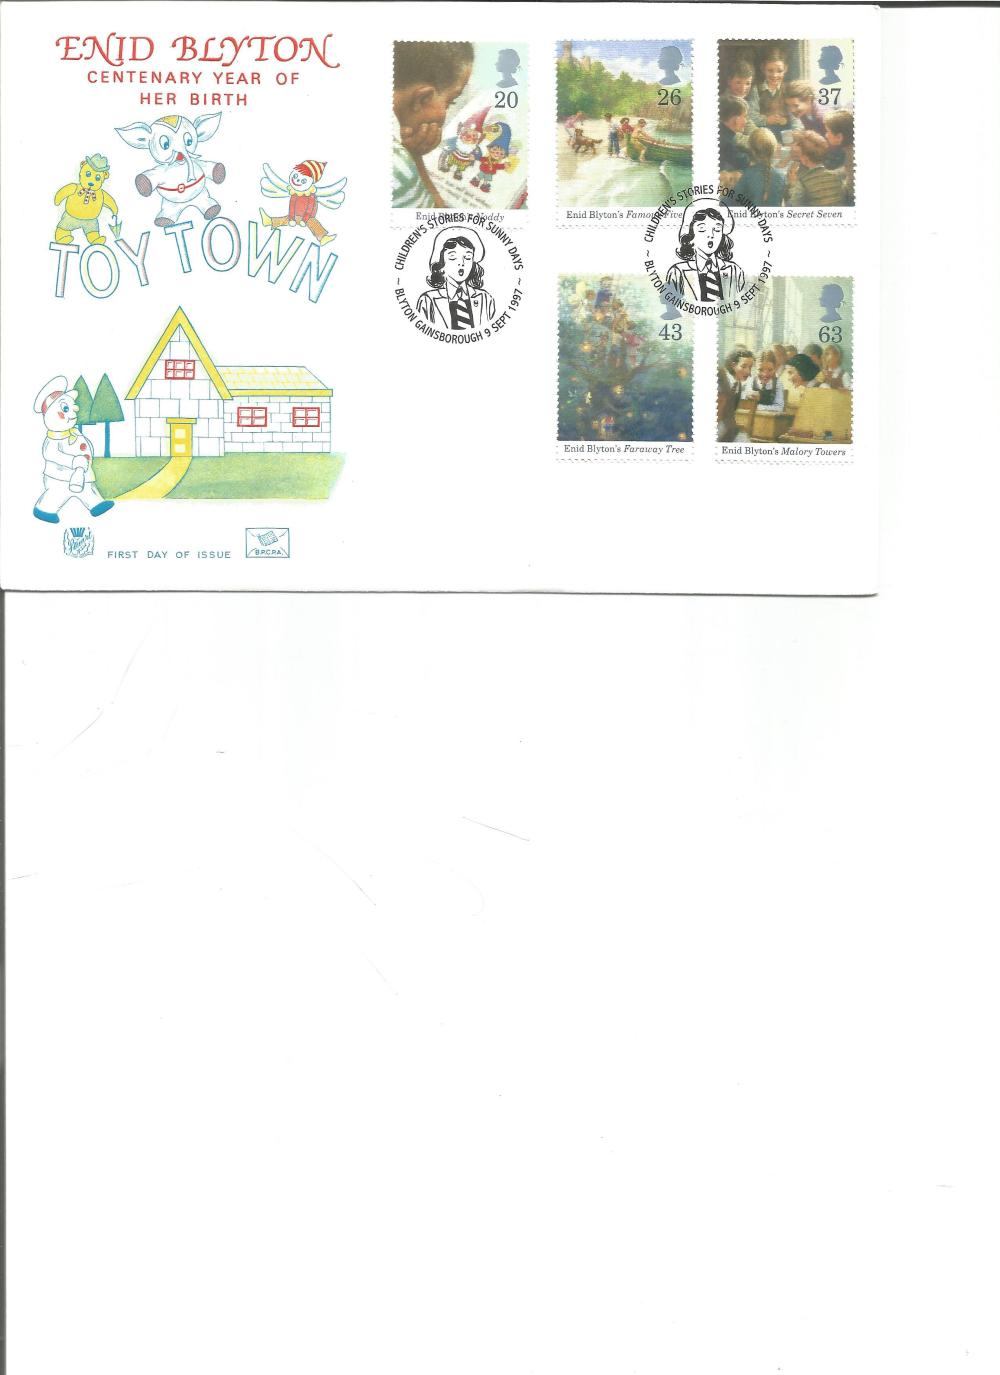 FDC Enid Blyton centenary year of her birth TOY TOWN c/w set of five commemorative stamps double